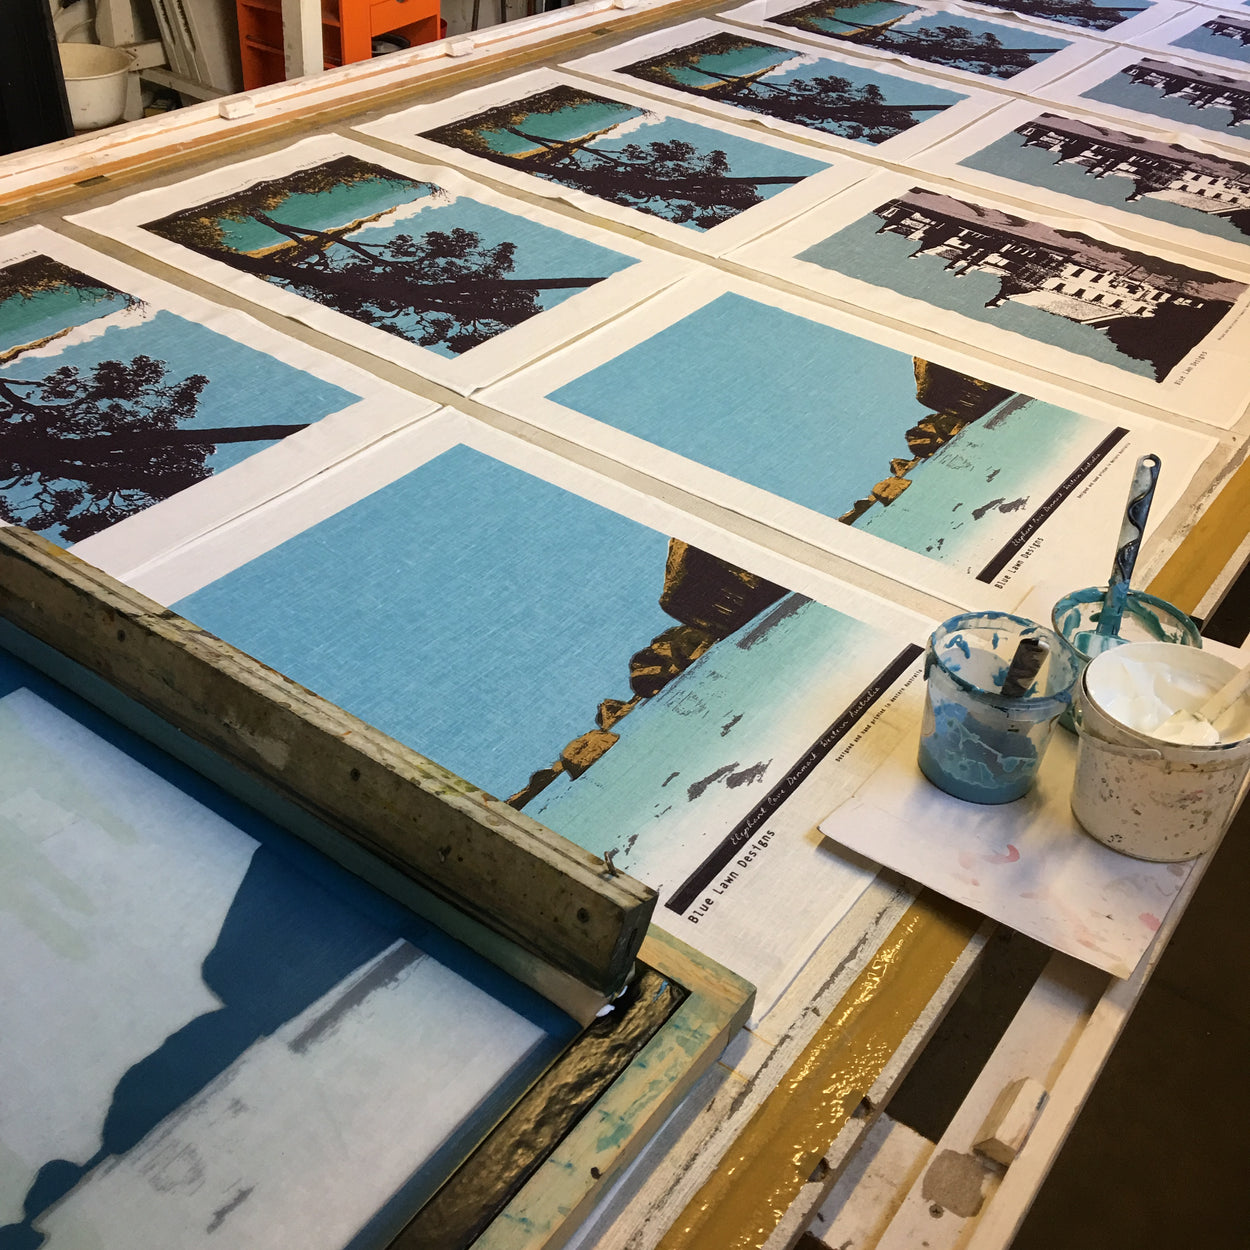 Photograph of tea towels being screenprinted.